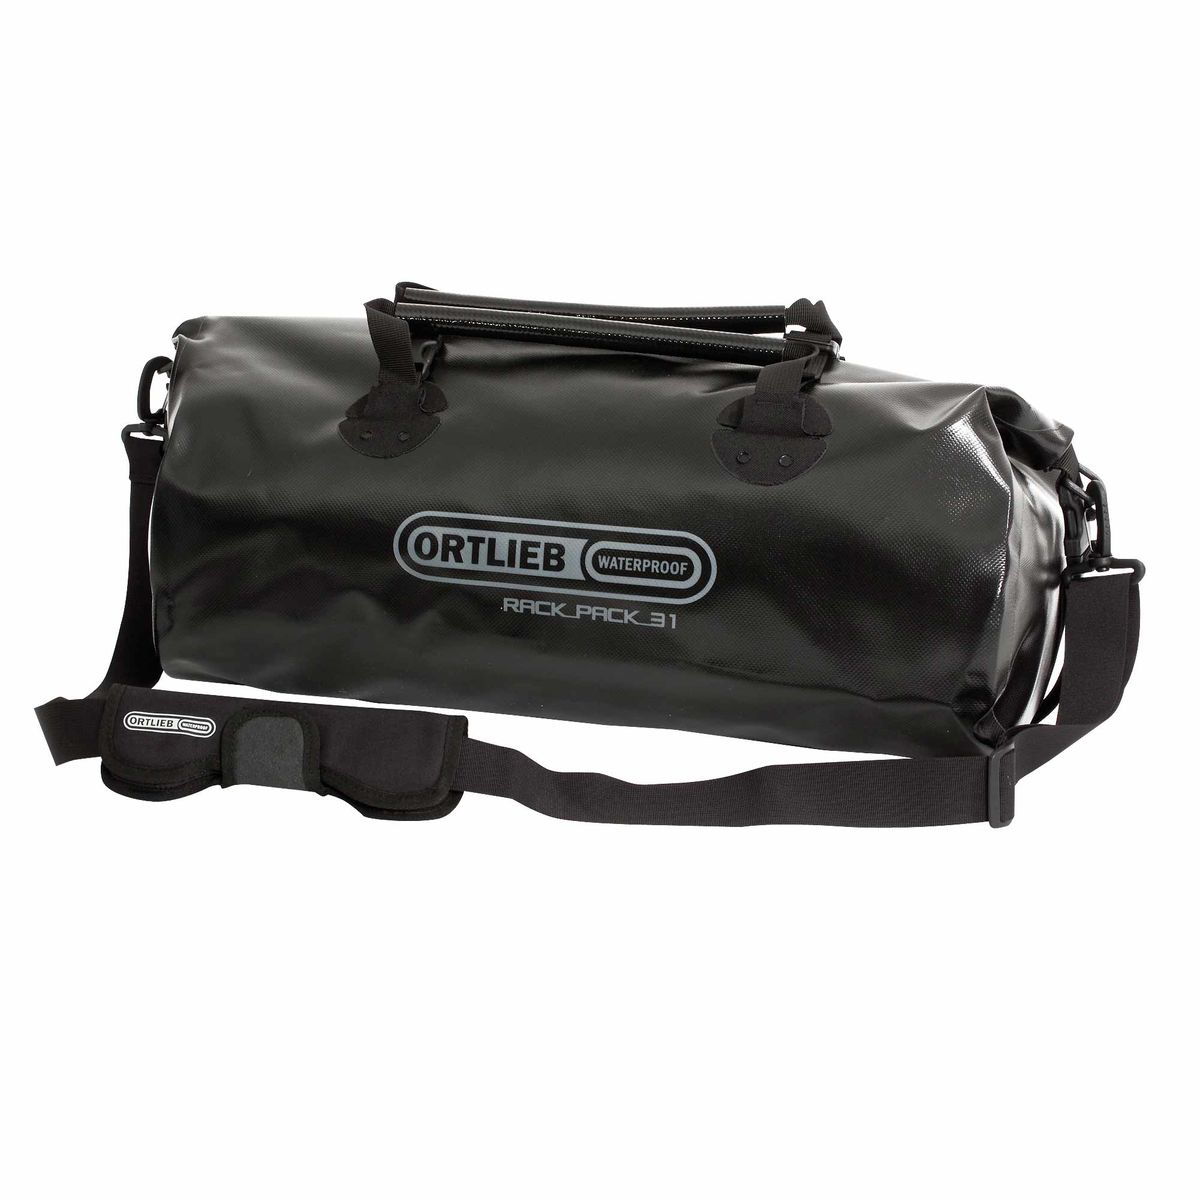 Rack Pack 31 L Travel Bag